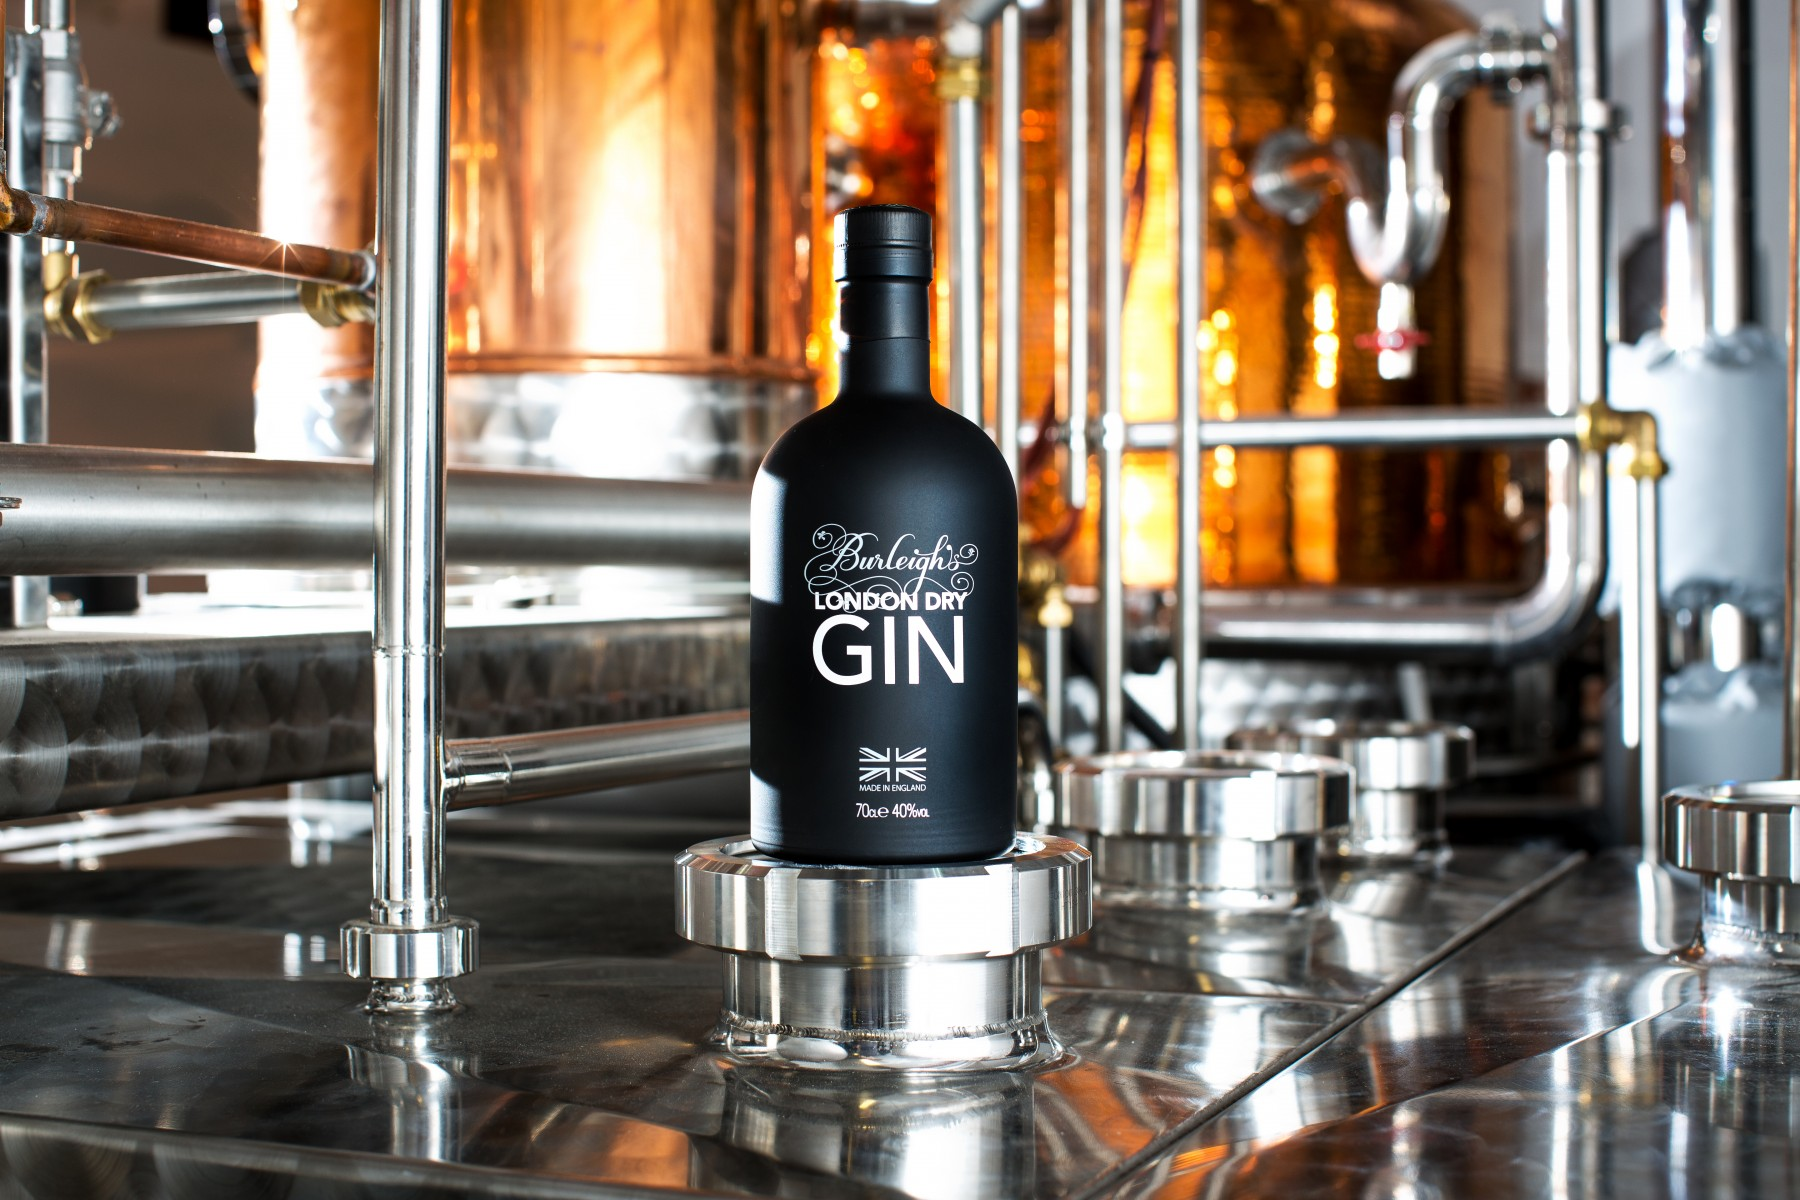 Burleigh London Dry Gin